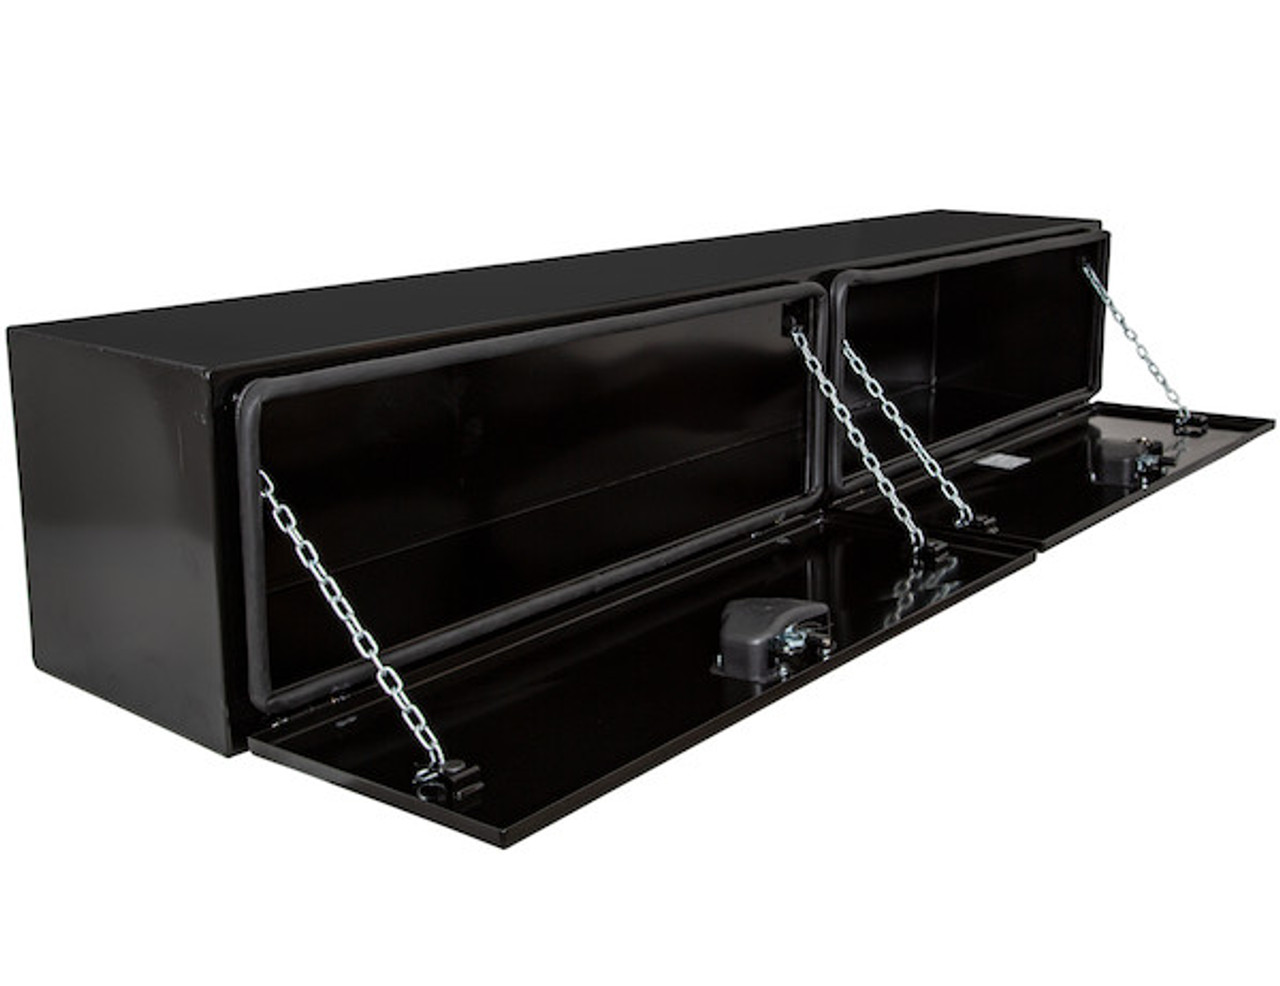 "1742336 BUYERS PRODUCTS XD BLACK STEEL UNDERBODY HEAVY DUTY TRUCK TOOLBOX 18""Hx18""Dx96""W PICTURE # 3"